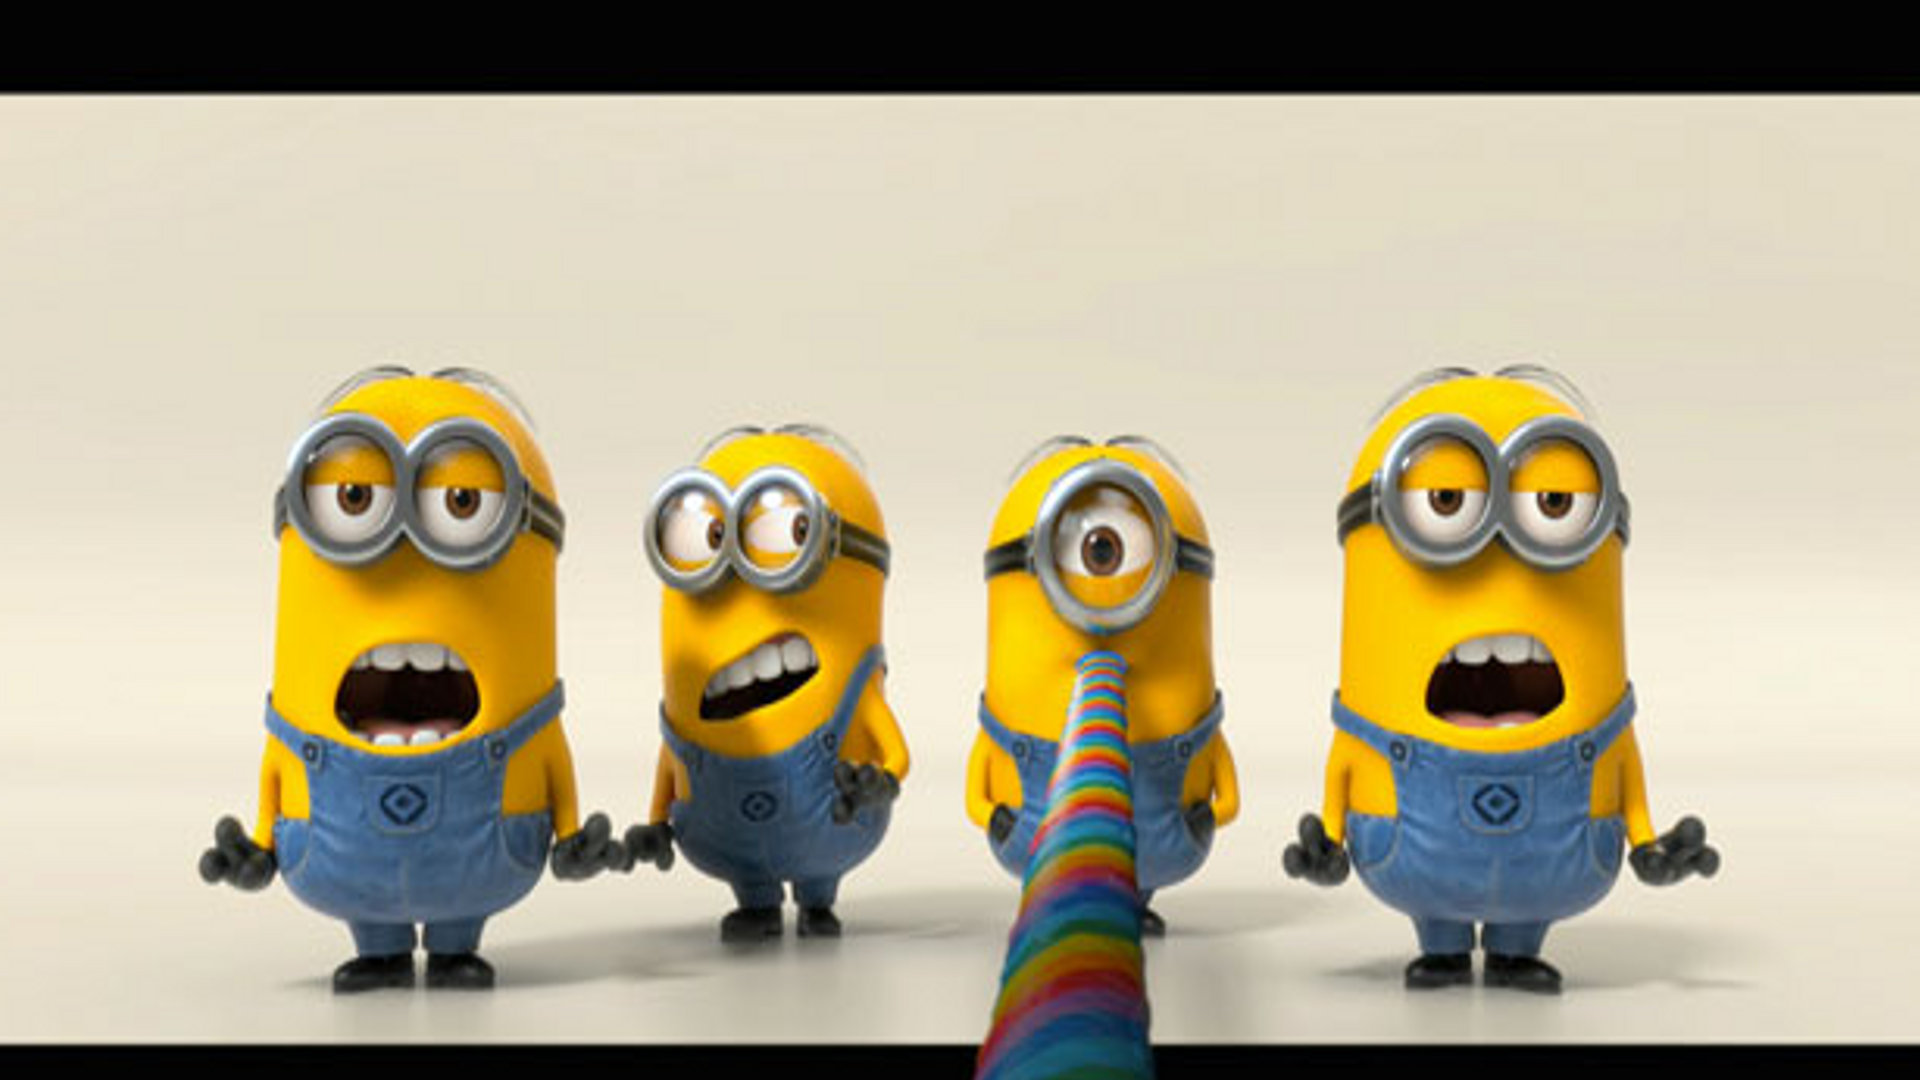 Despicable me 2 club images despicable me 2 hd wallpaper and